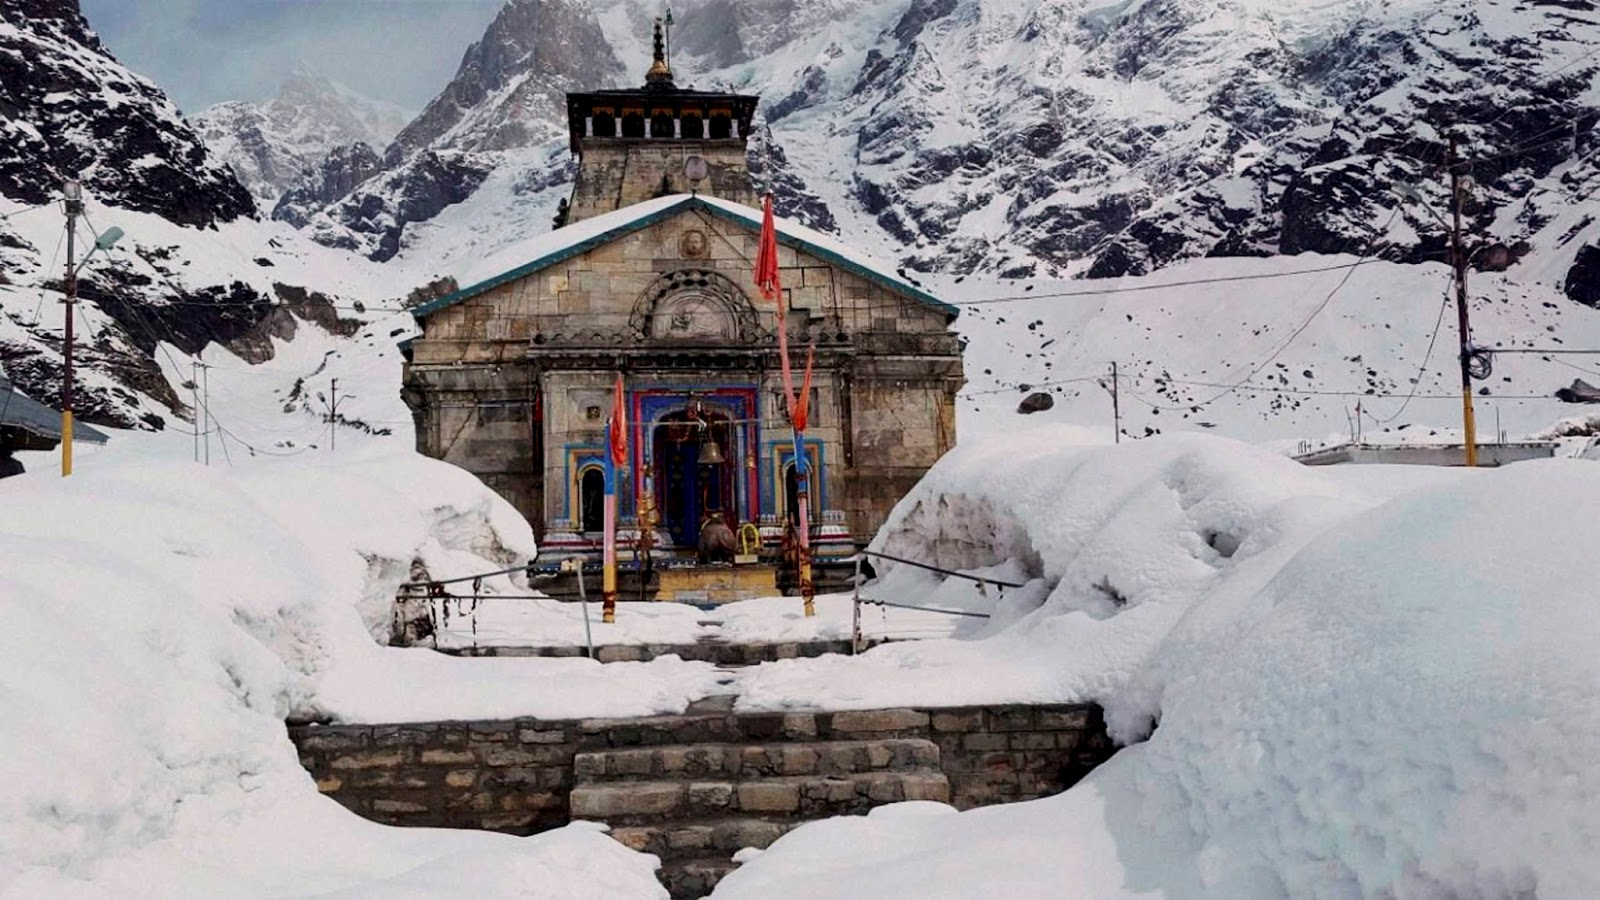 Trek to Kedarnath Temple at the Source of the Ganges